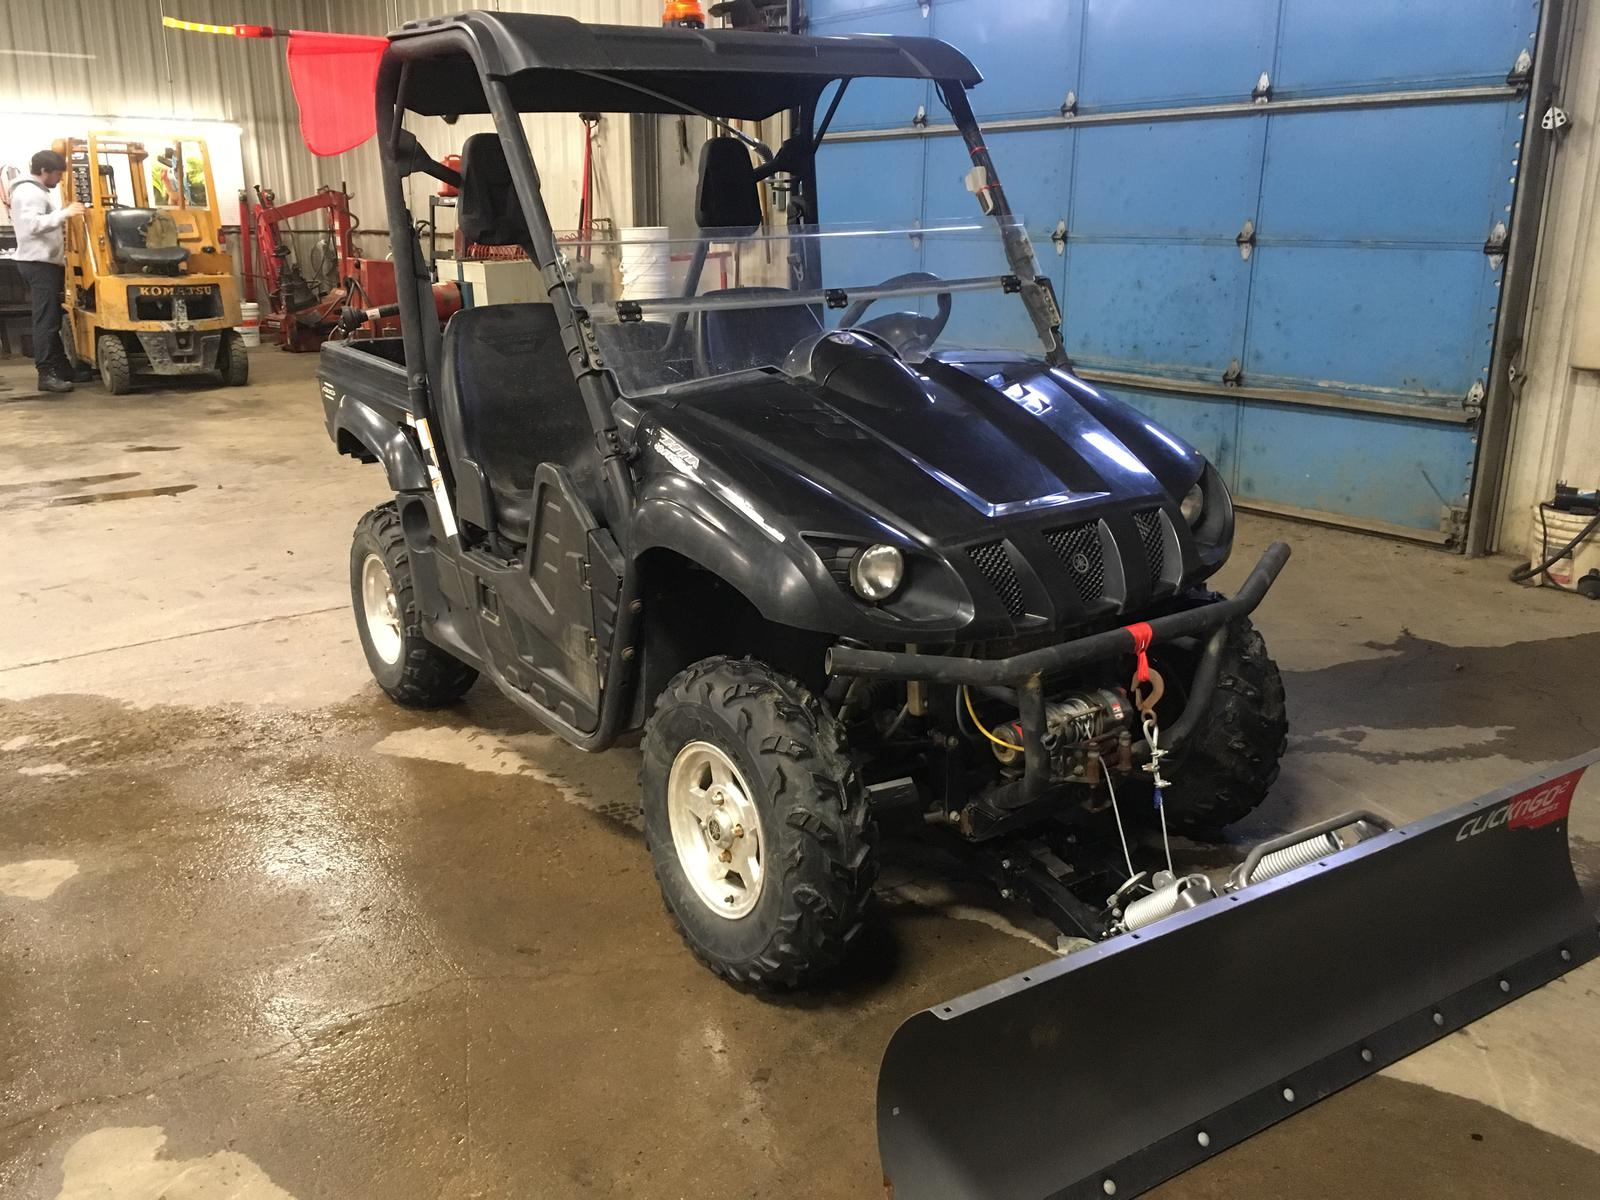 2009 Yamaha Rhino 700 For Sale In St Paul Ab Fuel Filter Location Img 5310